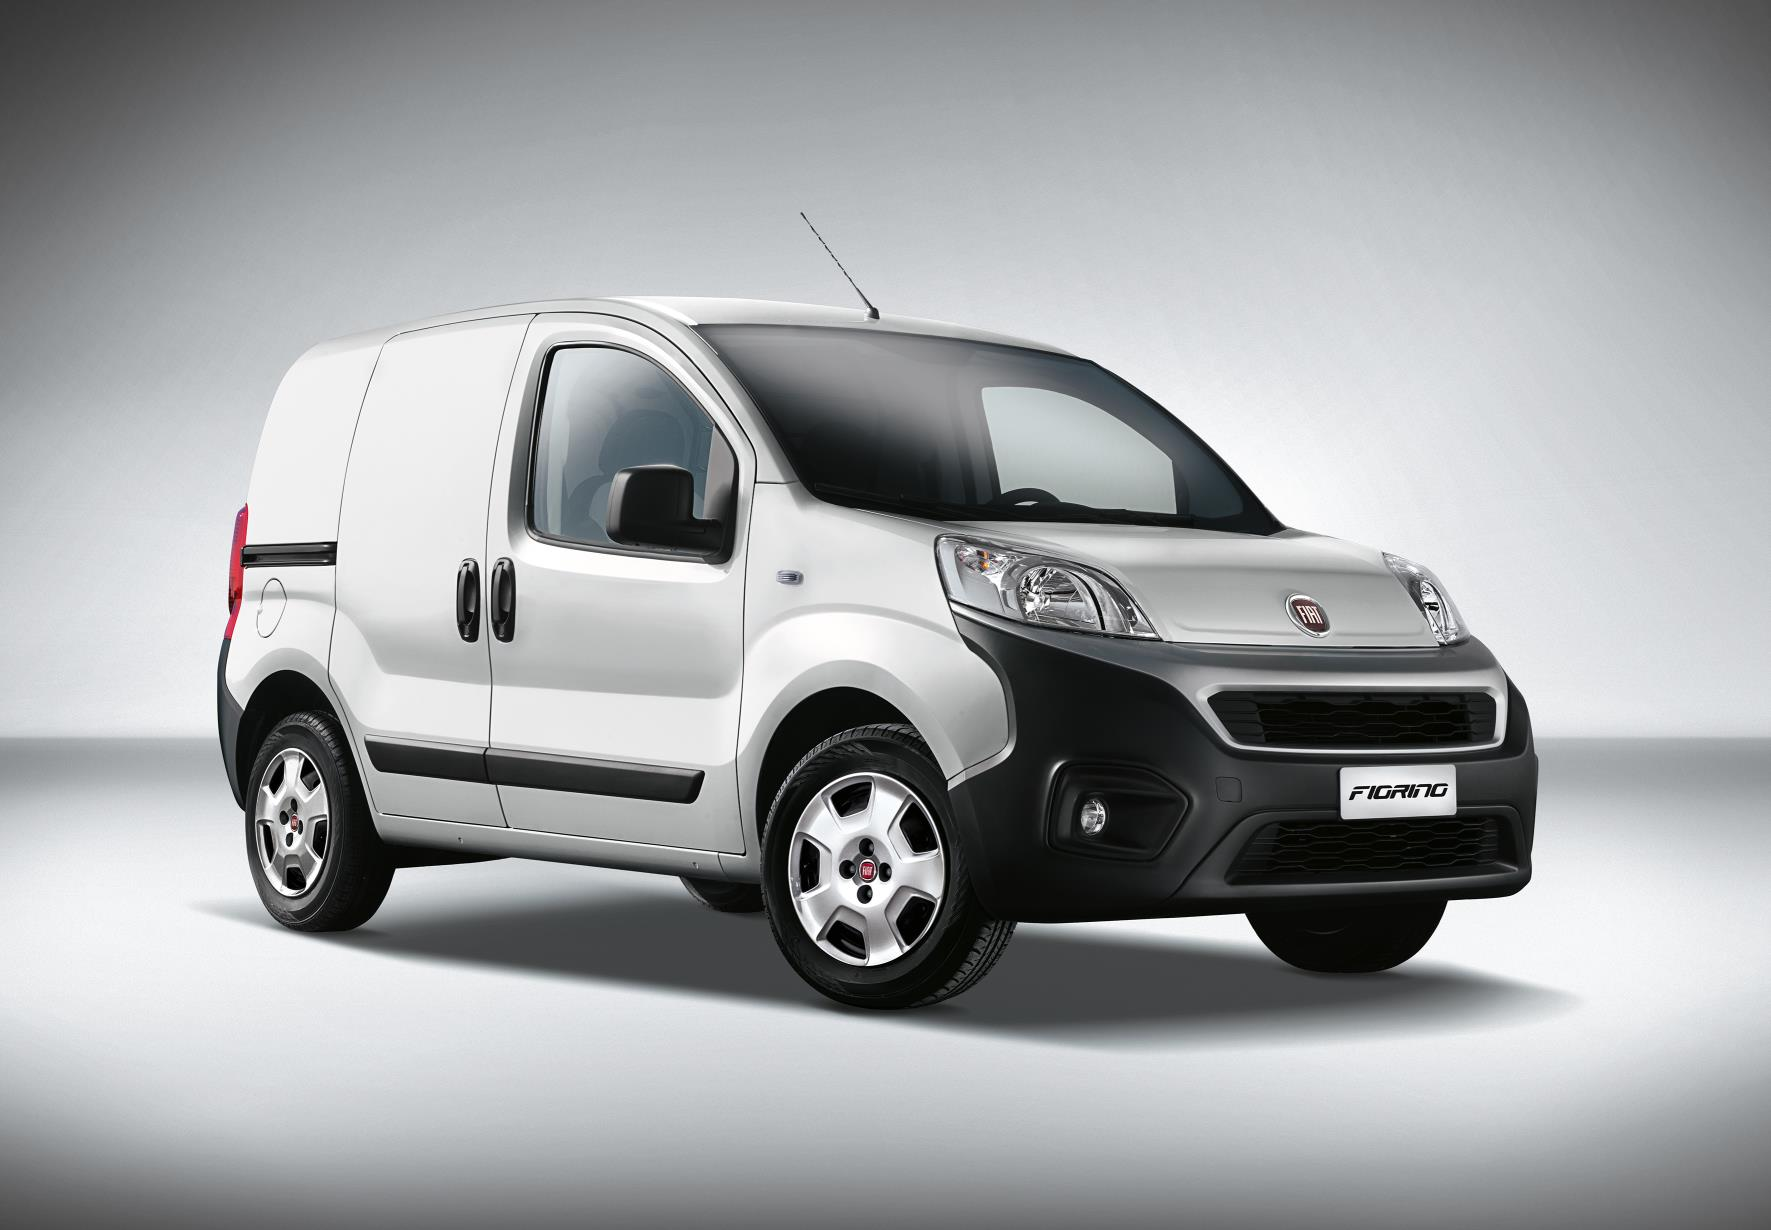 2016 fiat fiorino goes on sale later in april autoevolution. Black Bedroom Furniture Sets. Home Design Ideas